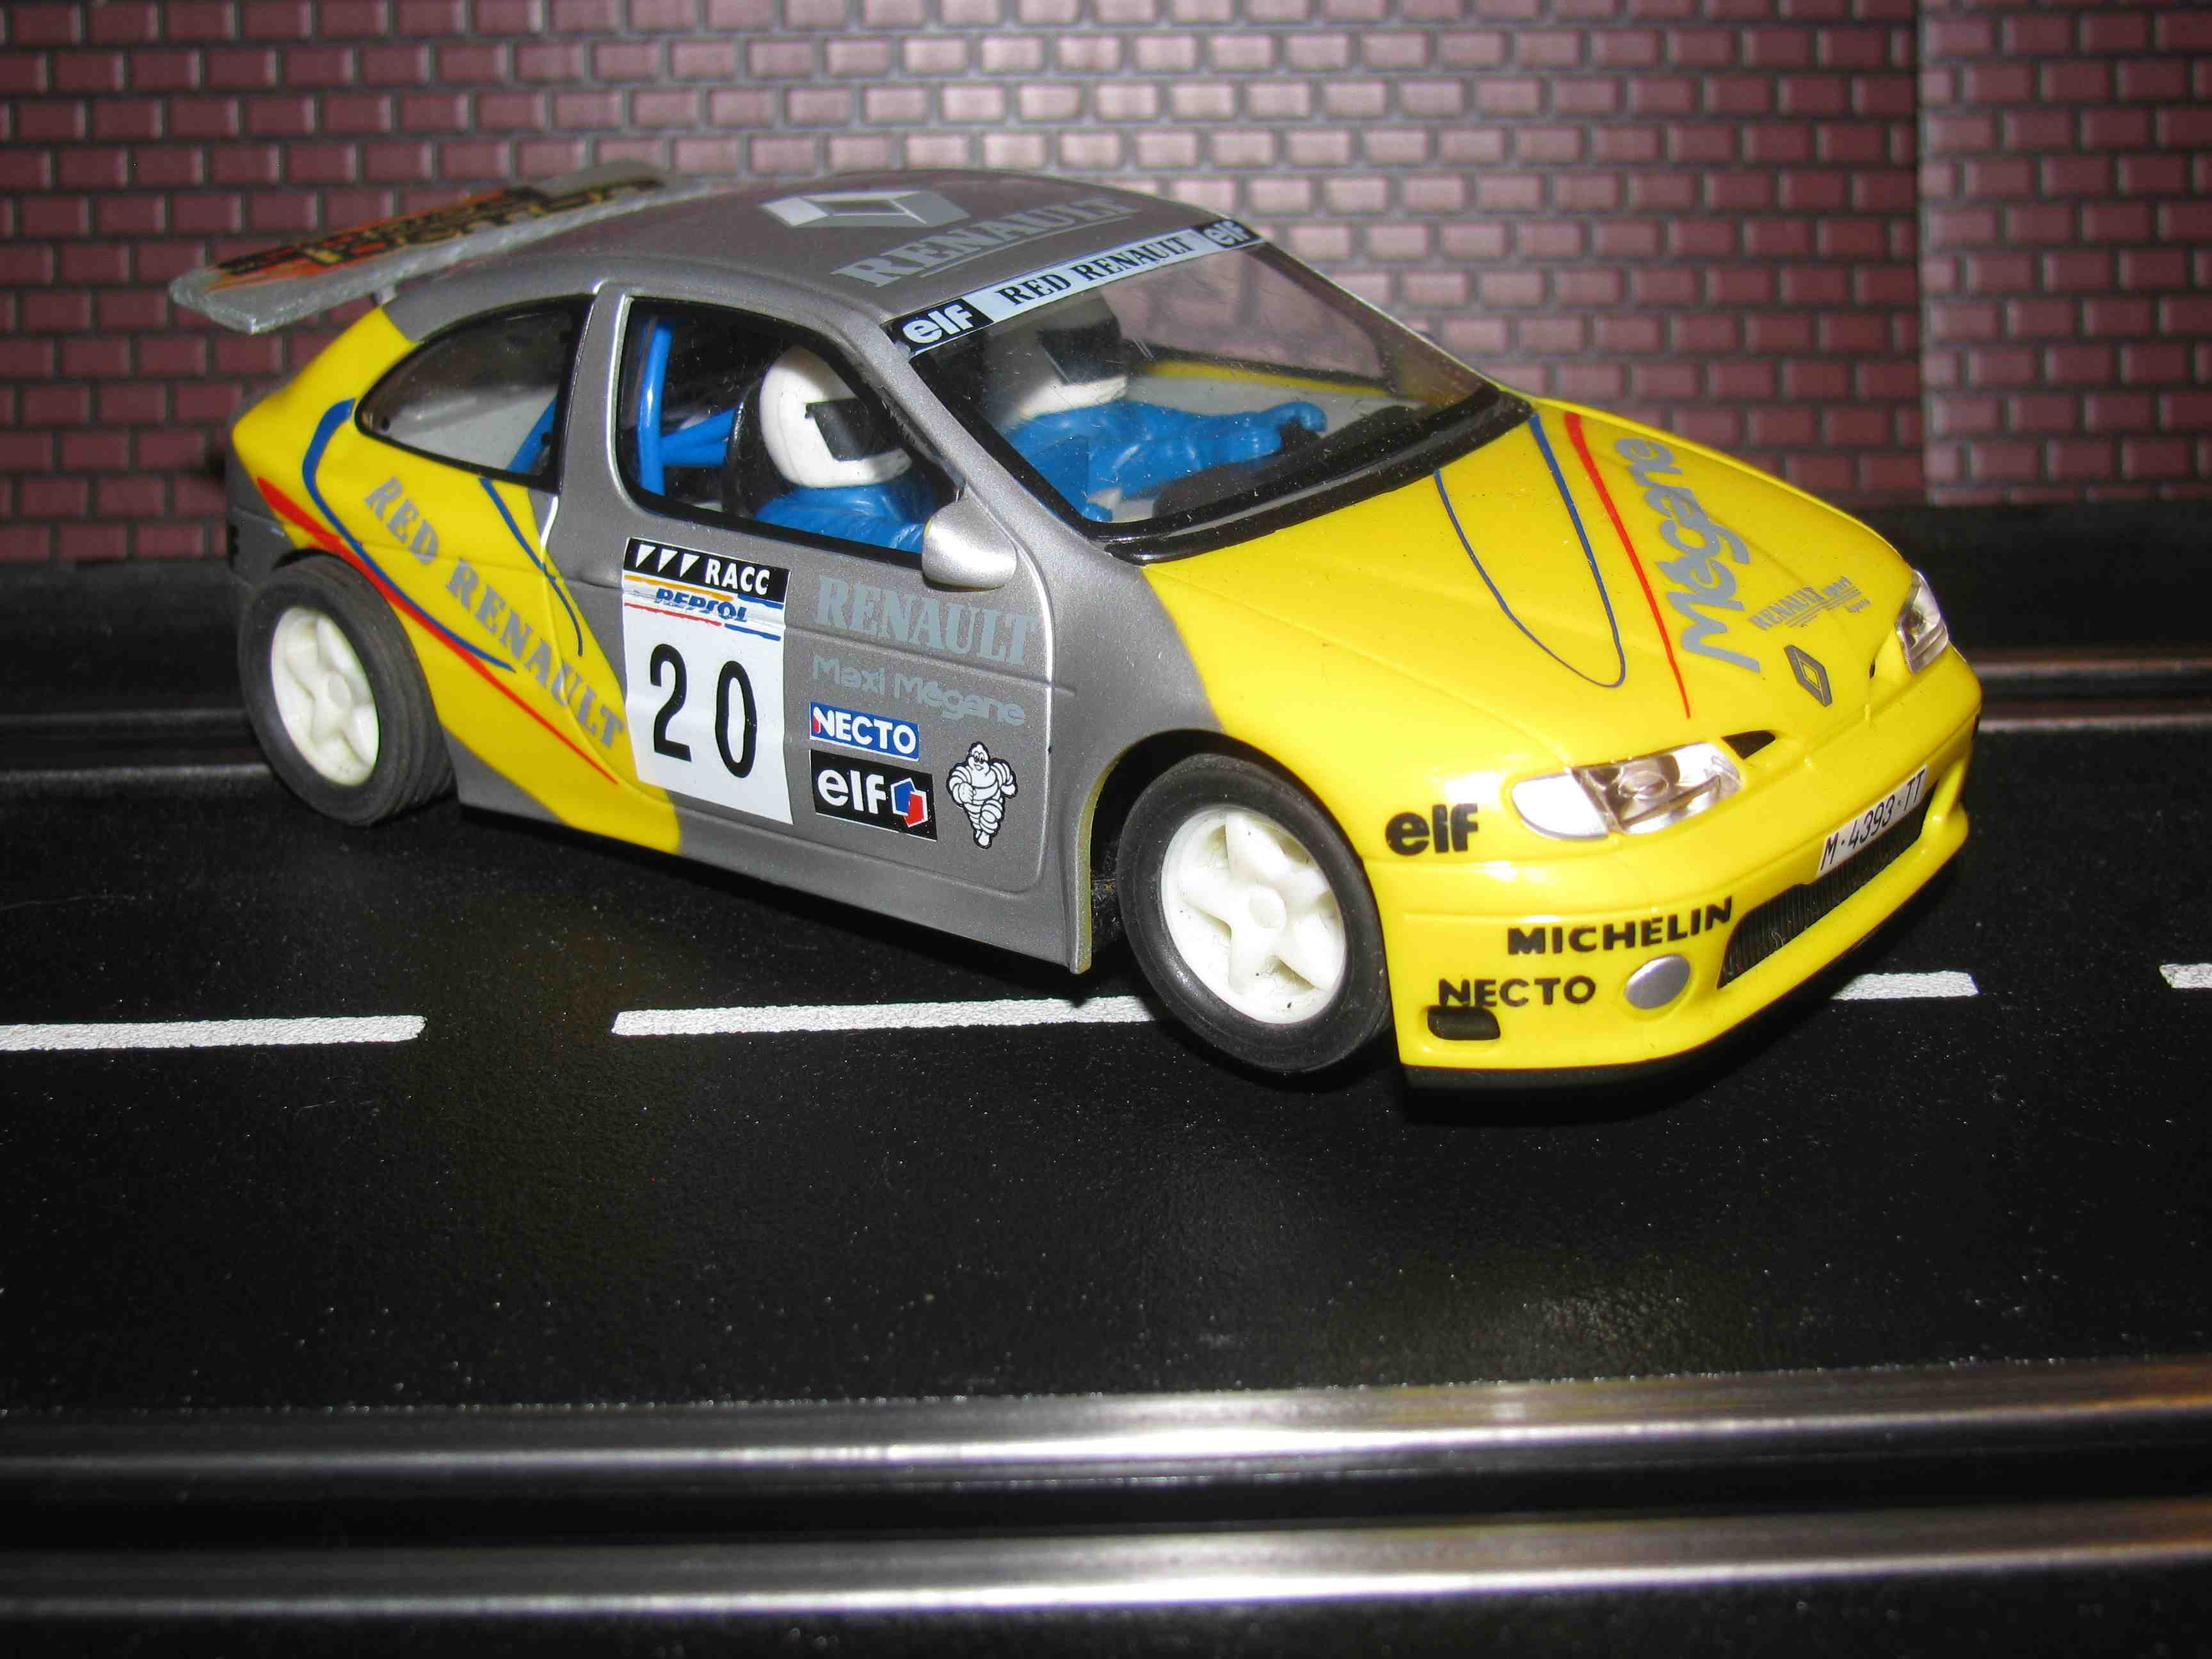 Renault Maxi Megane Rally Cross Slot Car 1/32 Scale – Yellow-Silver – Car 20